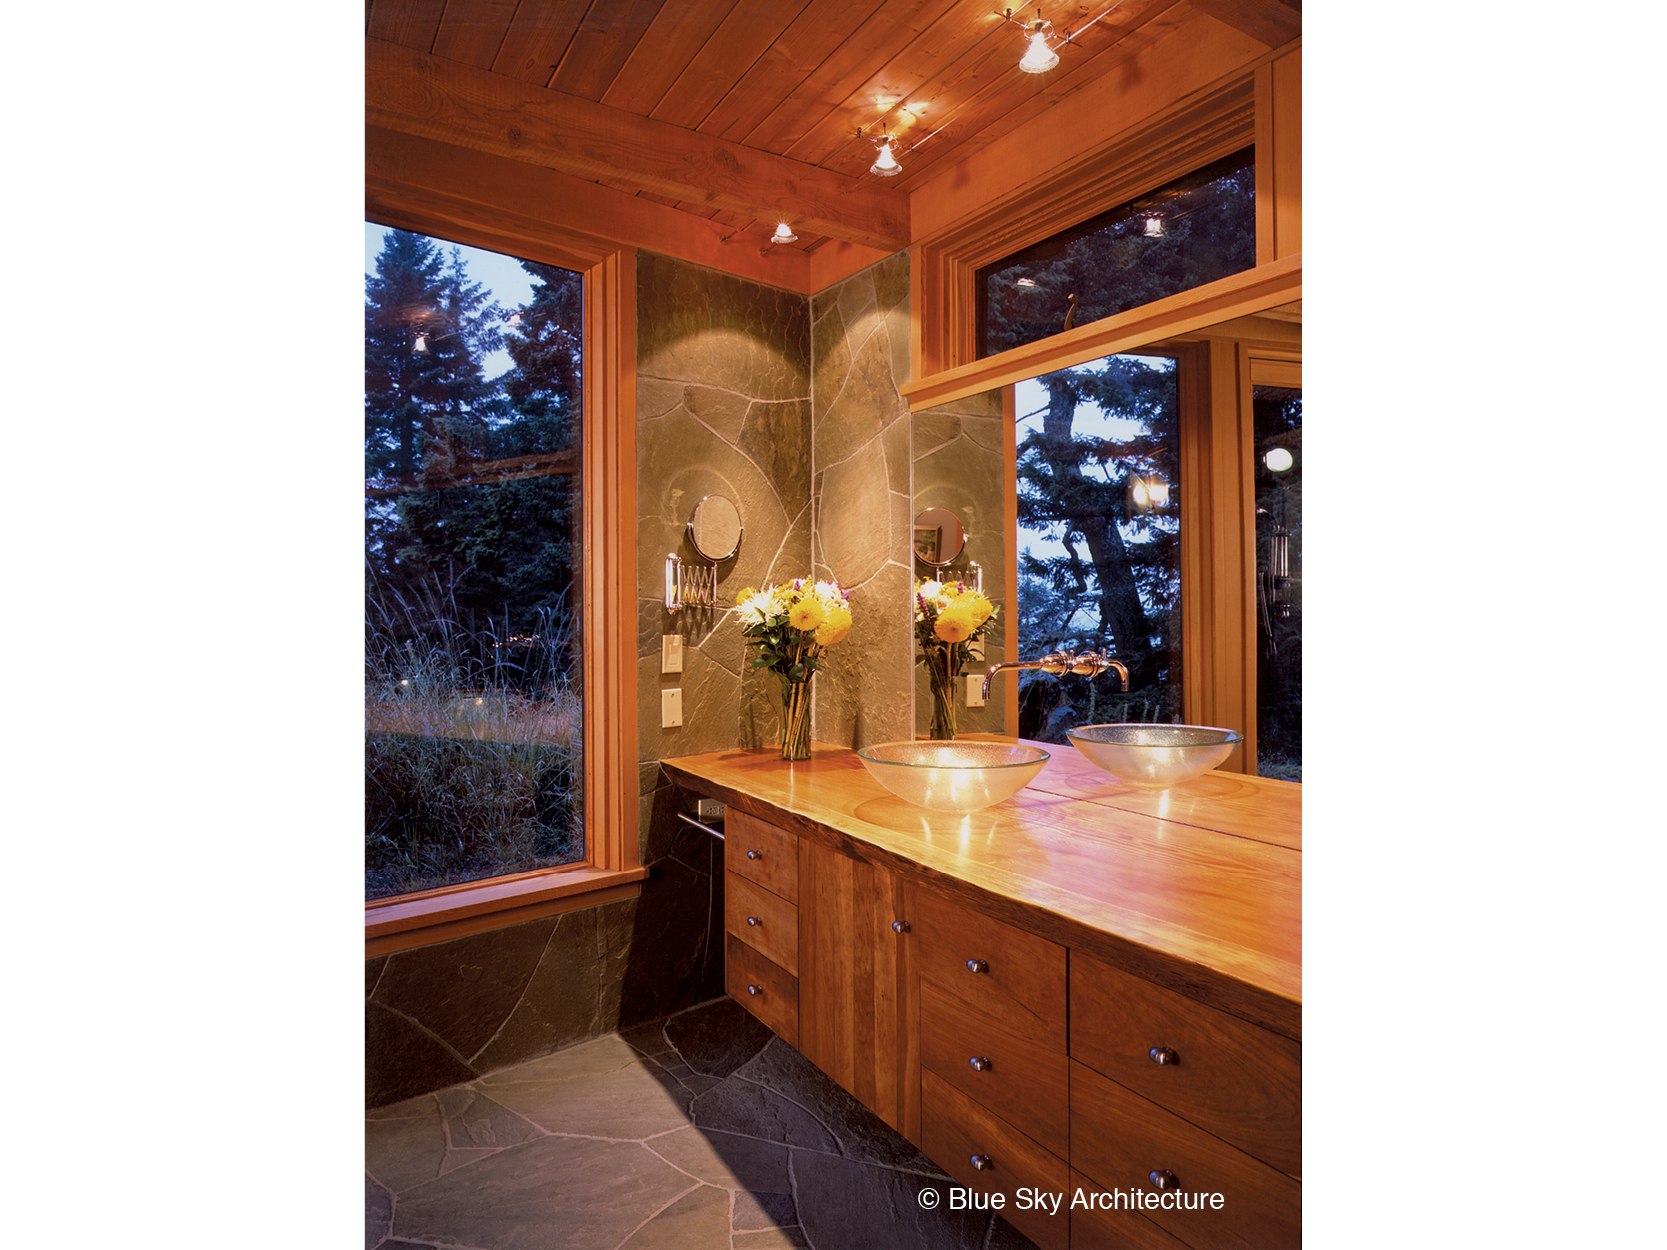 Sandstone tile and wood counter bath in Hill House